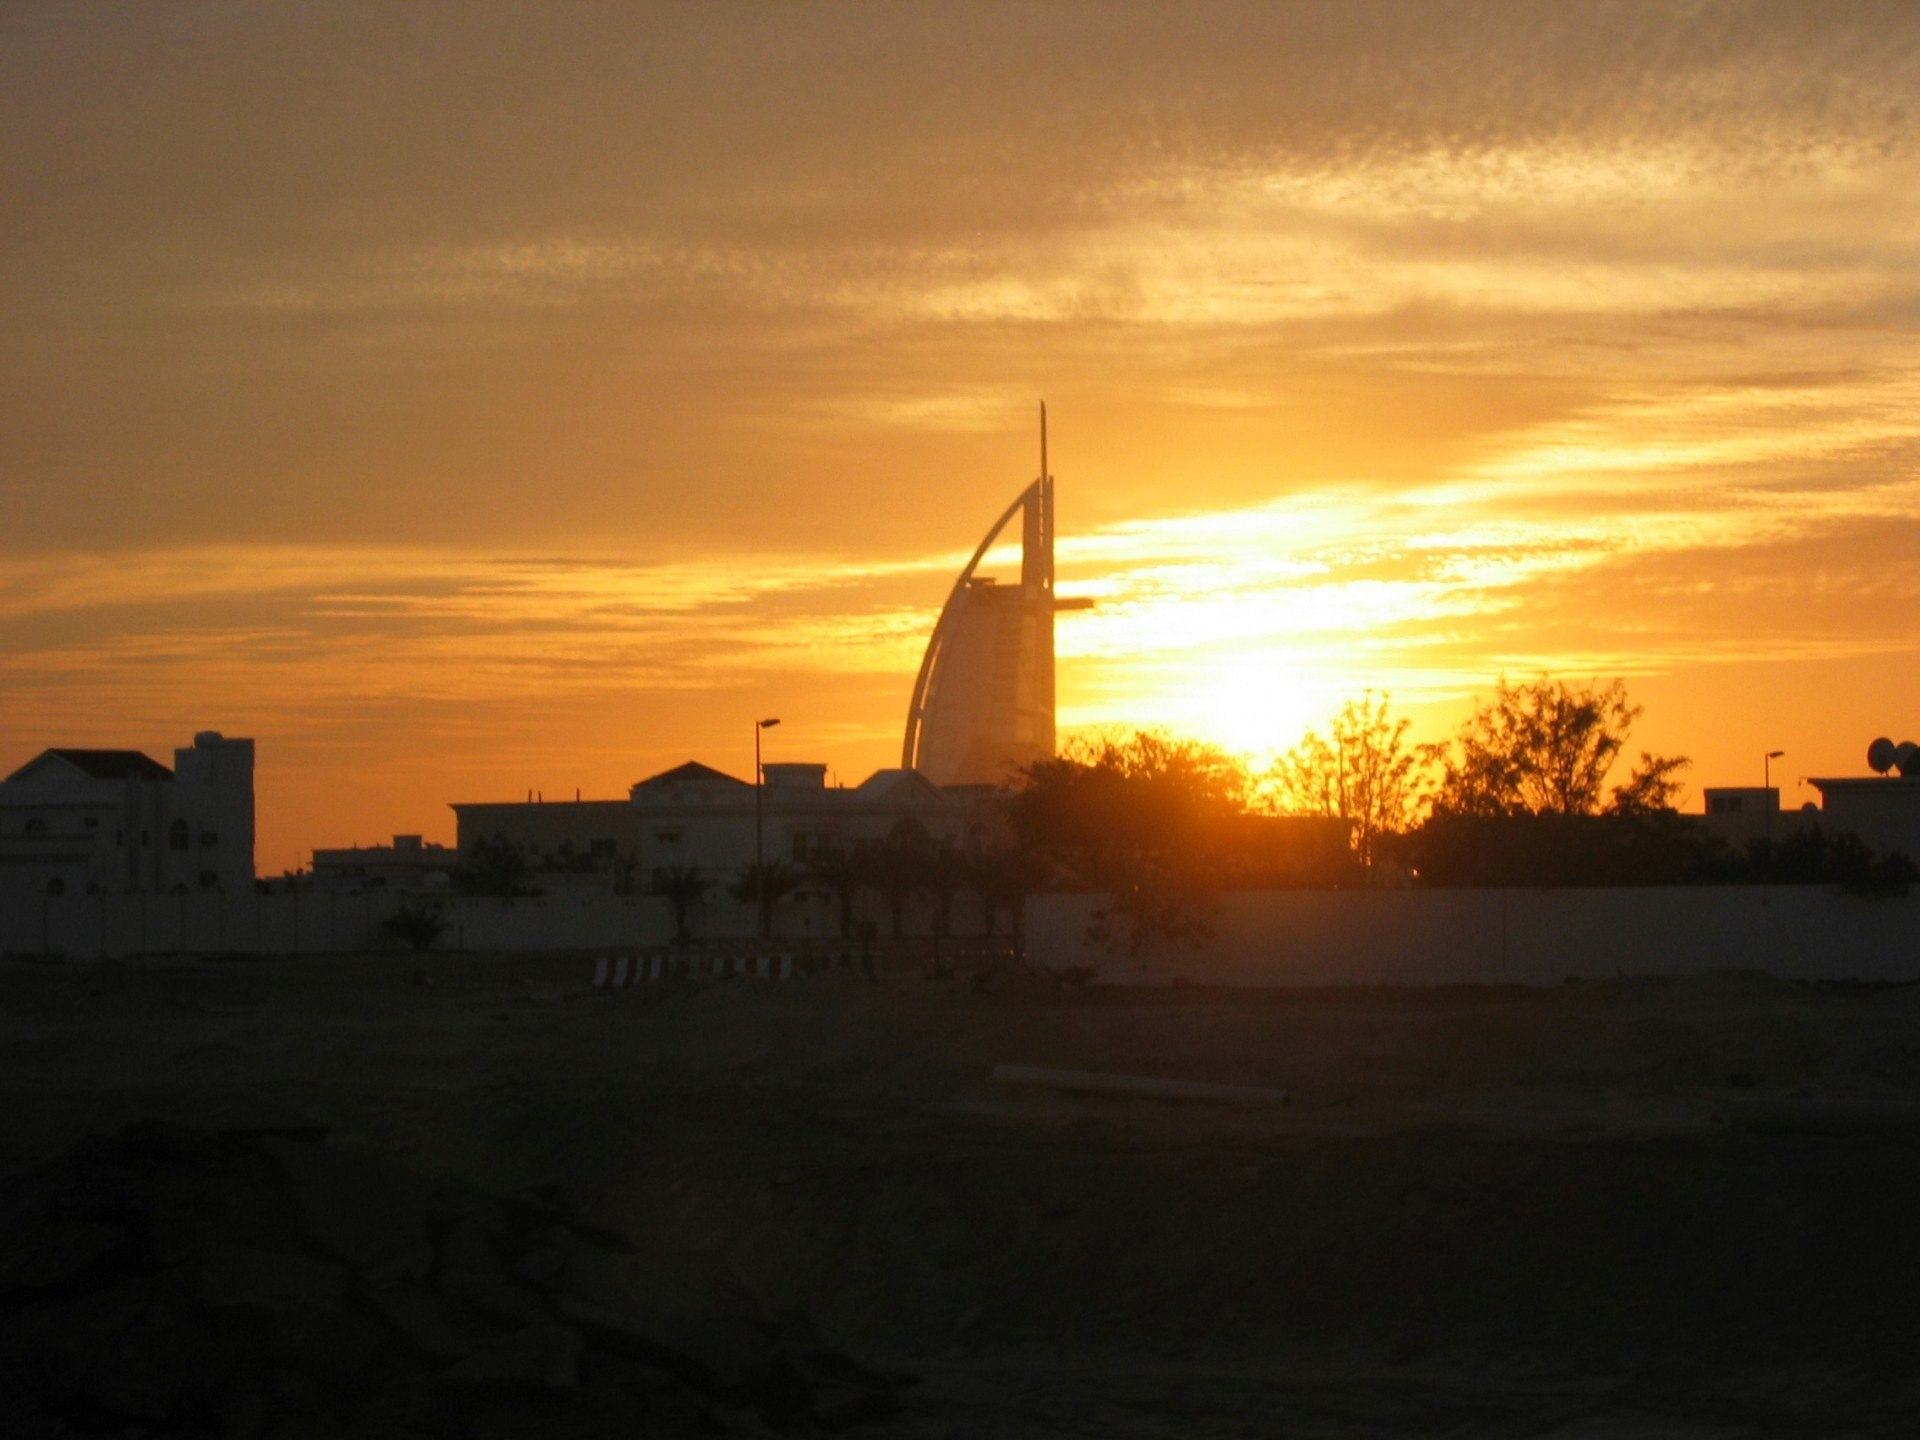 18 Burj Al Arab - The one and only 7 star hotel